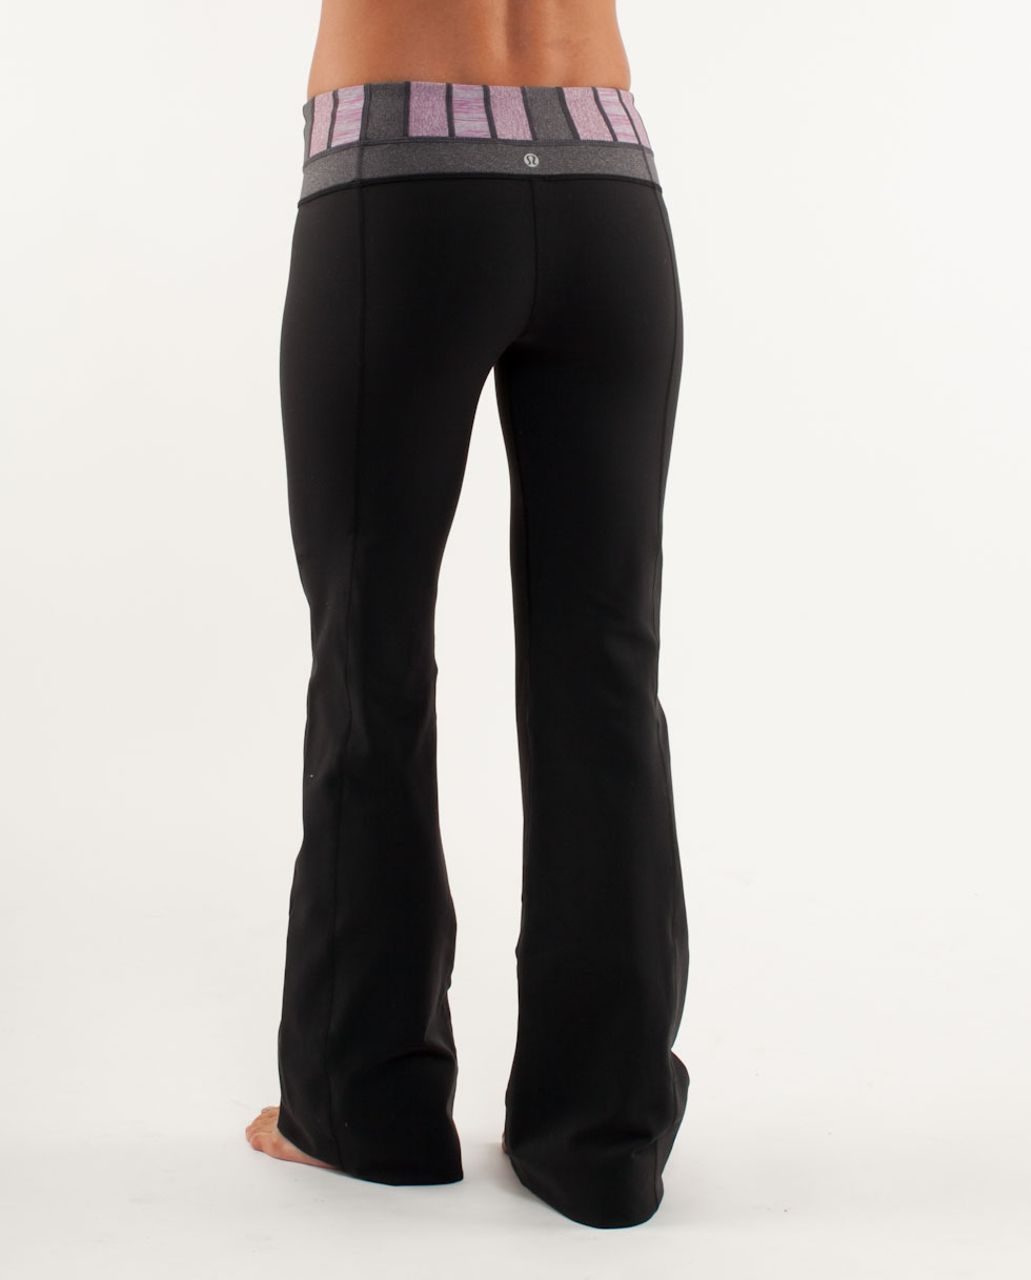 Lululemon Groove Pant (Regular) - Black /  Quilt 20 /  Heathered Coal